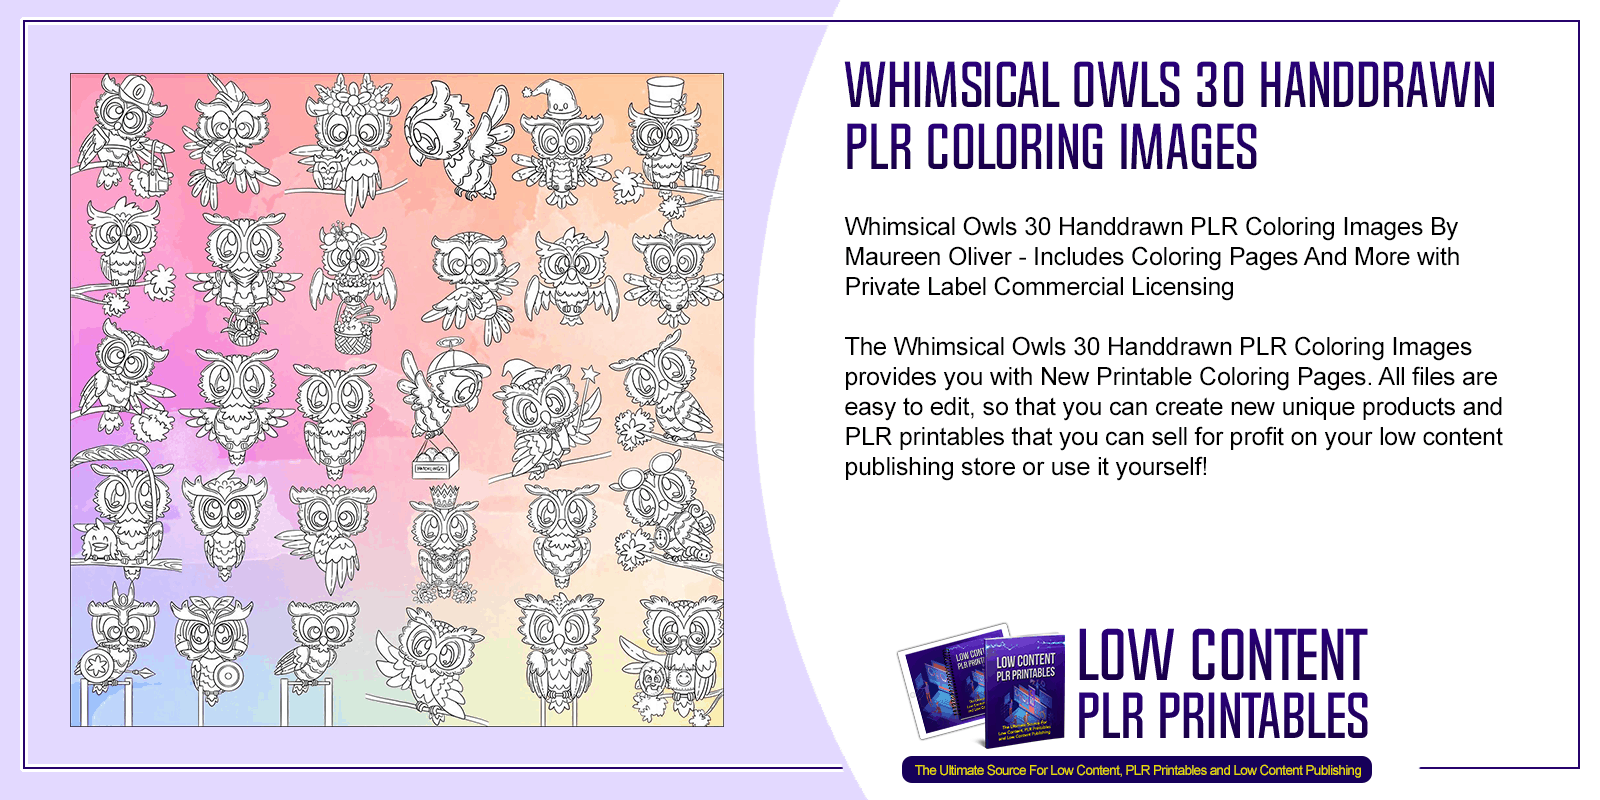 Whimsical Owls 30 Handdrawn PLR Coloring Images